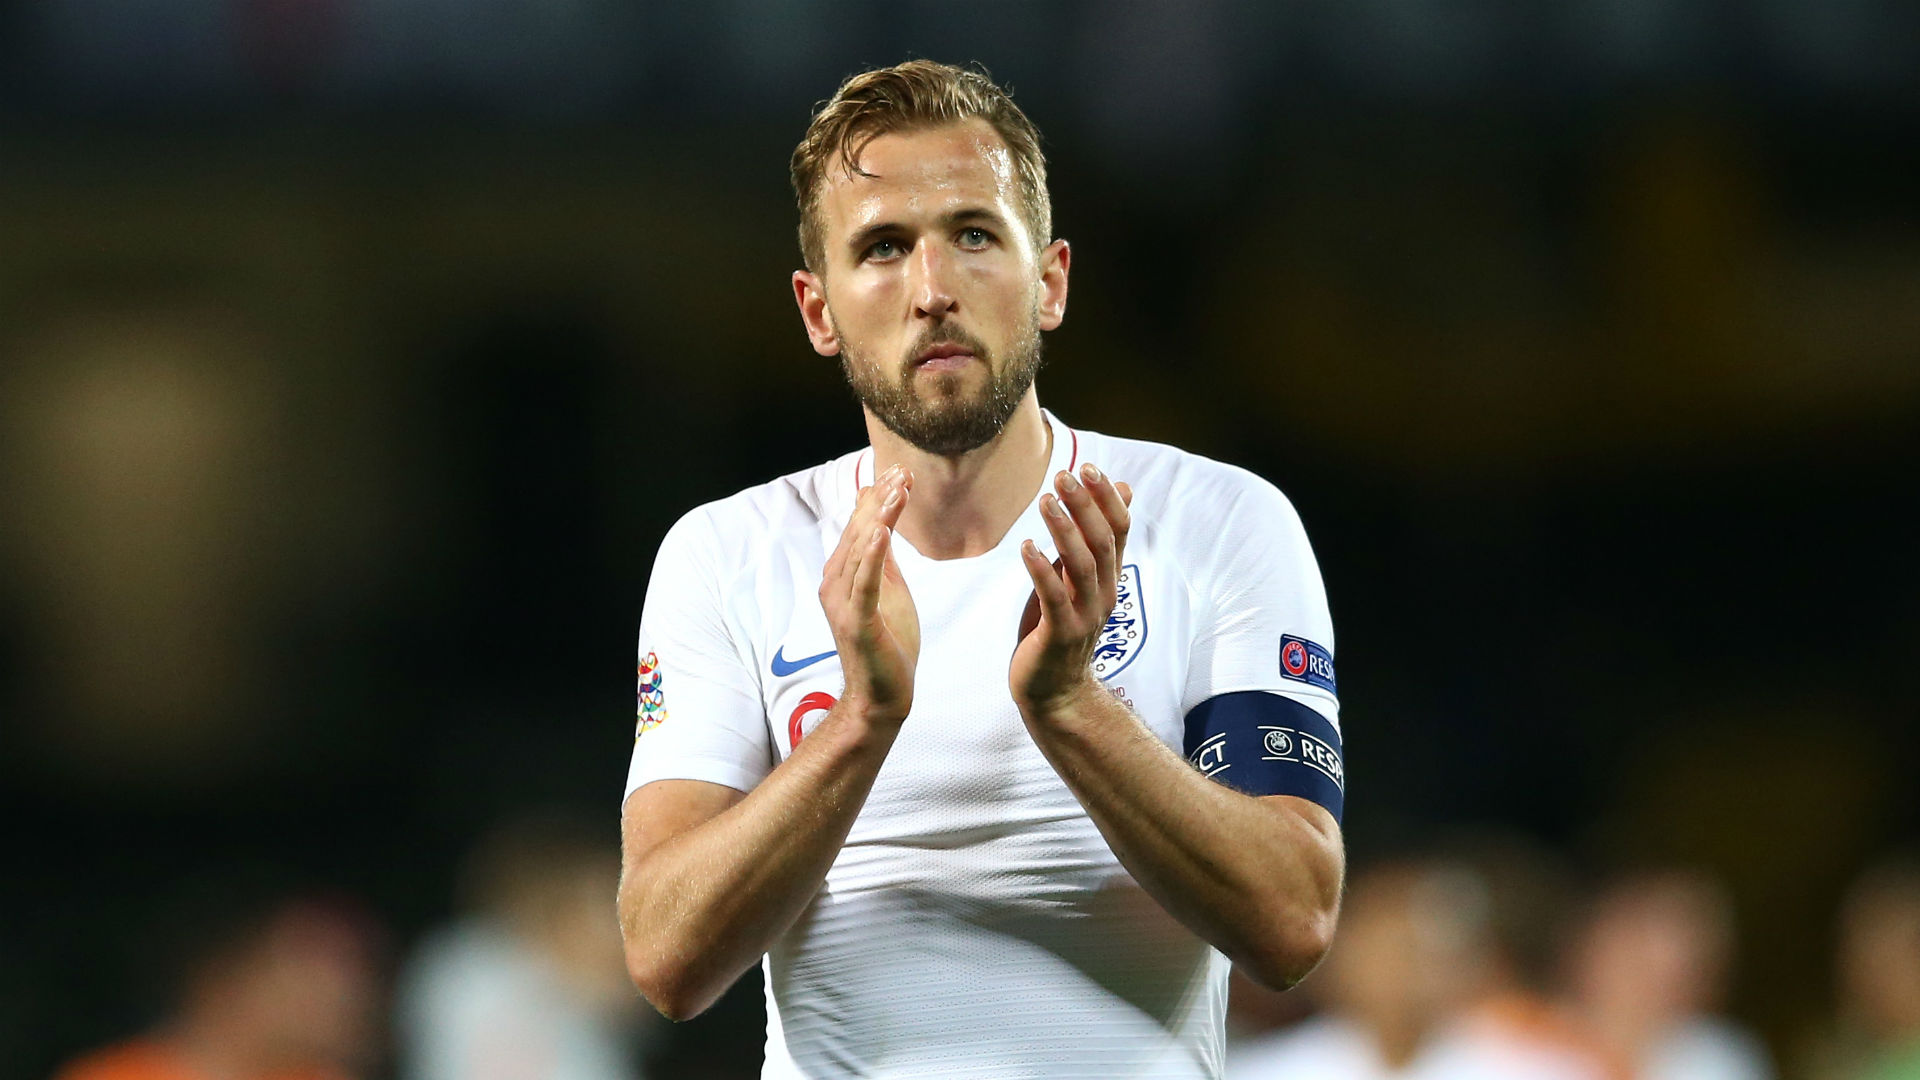 Spurs and England pain motivates hurting Kane